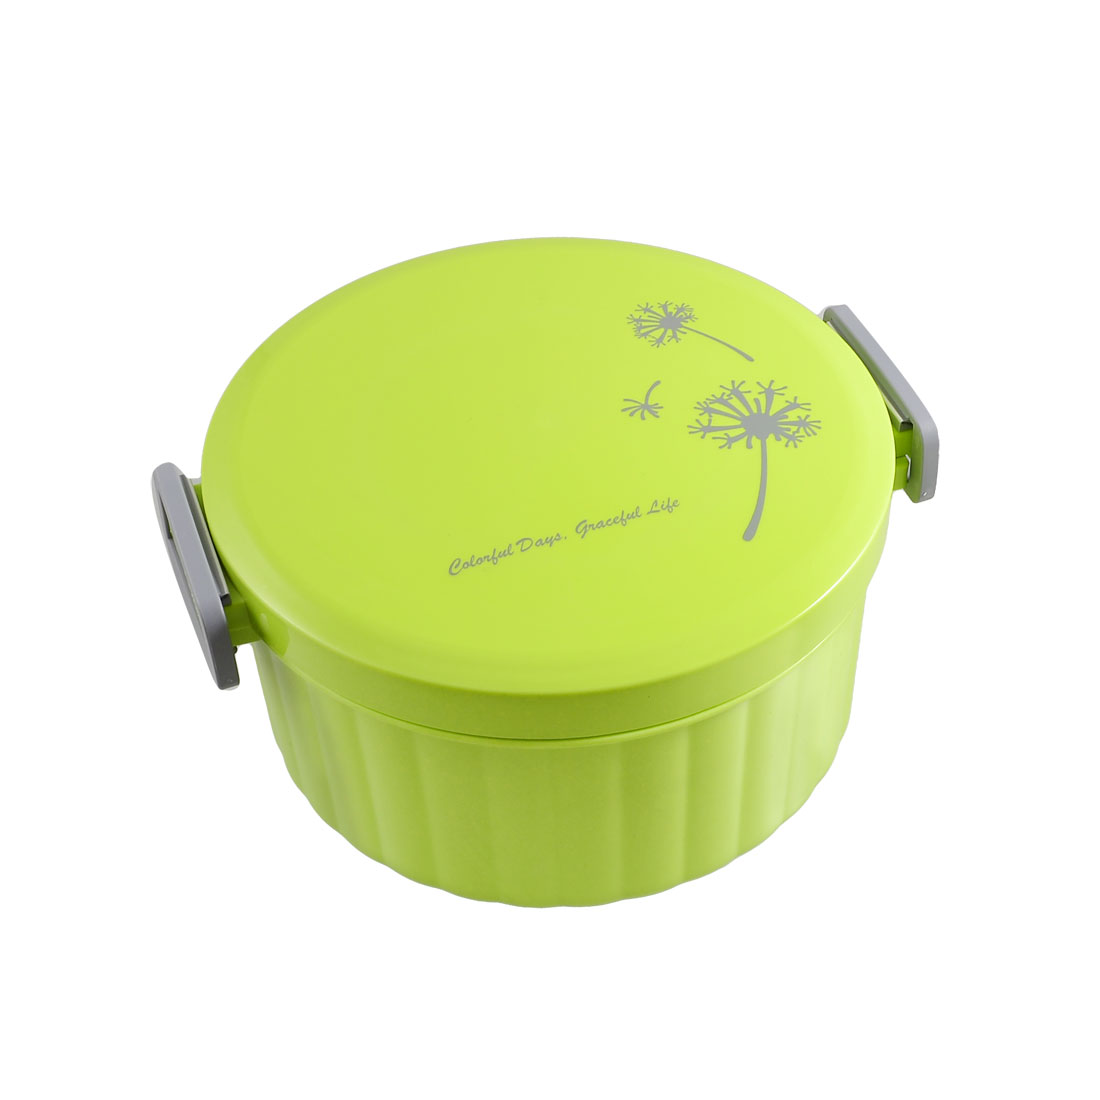 Dandelion Print Lime Green Plastic Round Lunch Box Food Storage Container